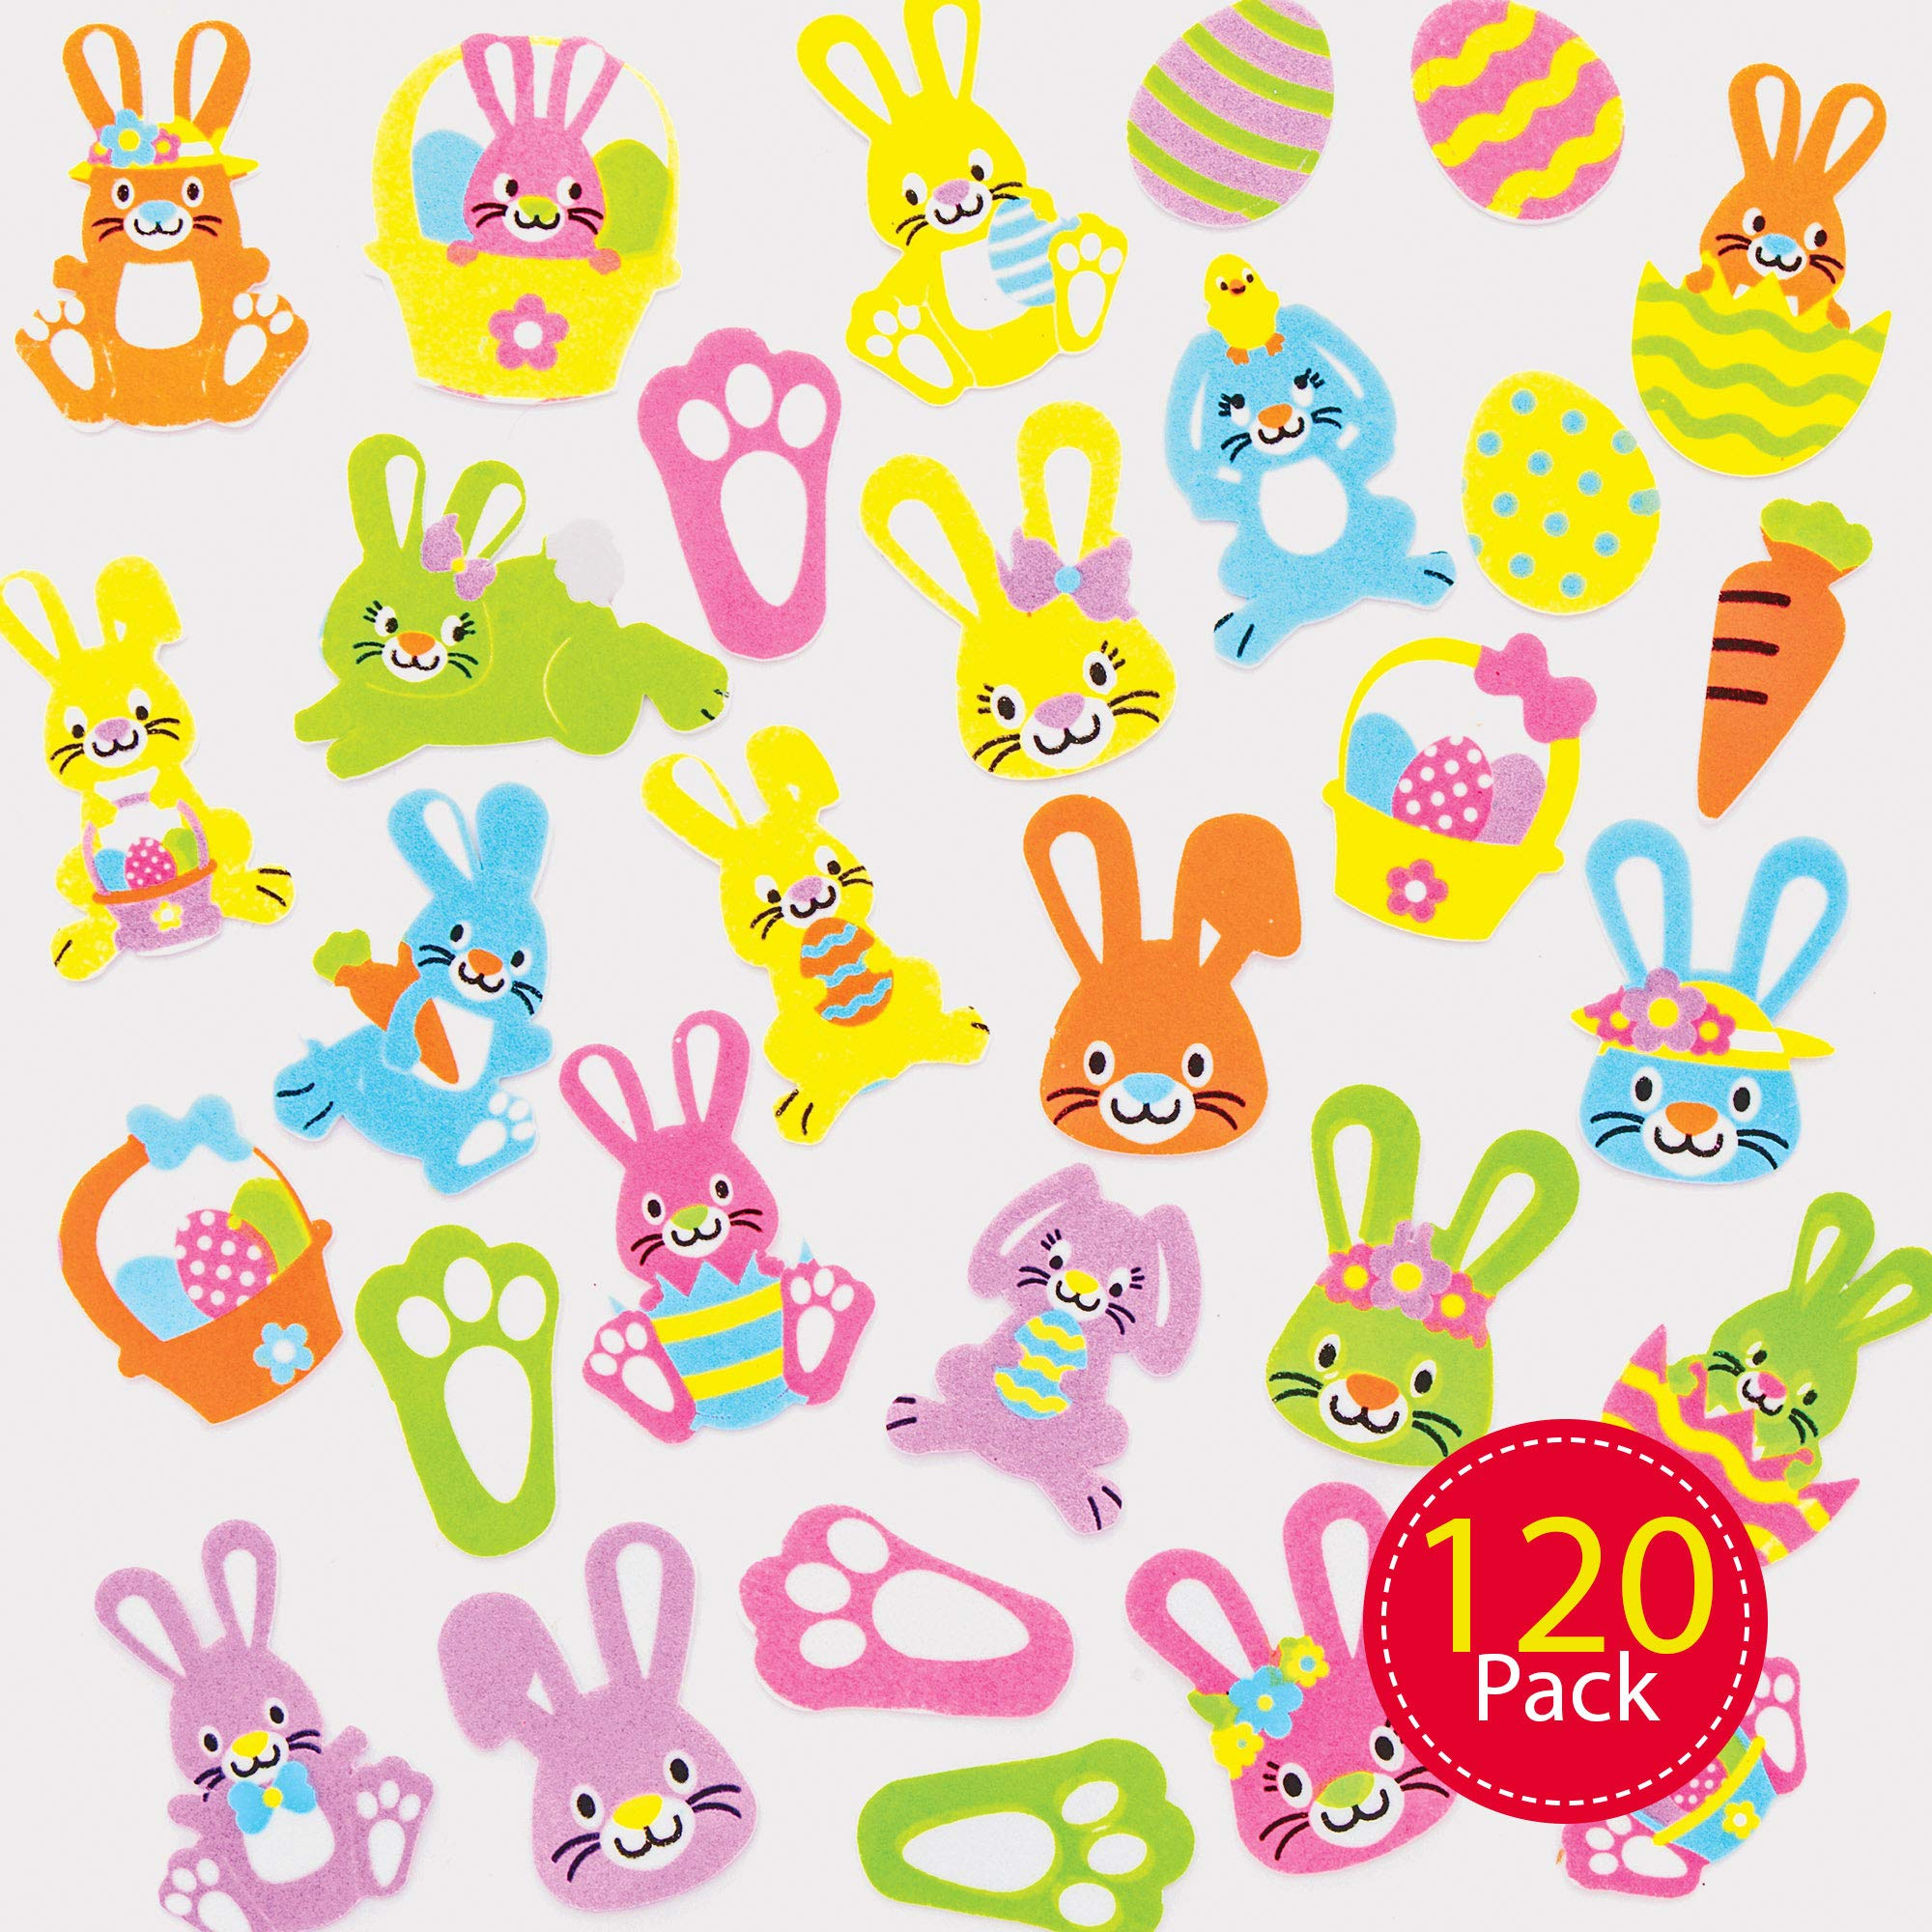 Baker Ross Bunny Foam Stickers, Creative Art and Craft Supplies for Kids to Make and Decorate (120 Pack) , Assorted , AT388